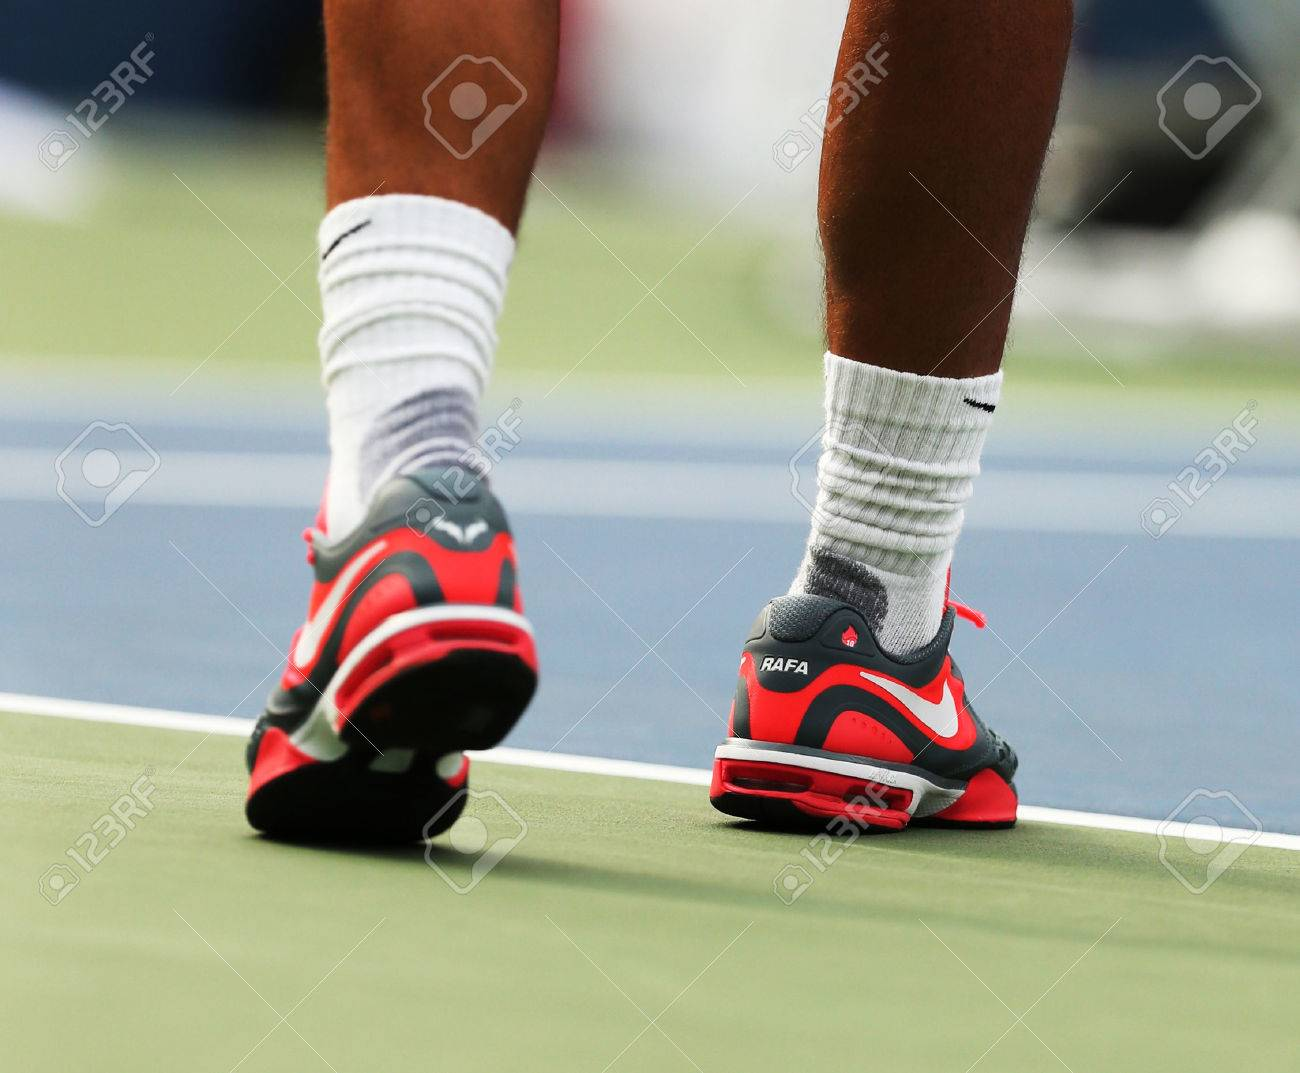 Flushing Ny August 28 Twelve Times Grand Slam Champion Rafael Stock Photo Picture And Royalty Free Image Image 24010210